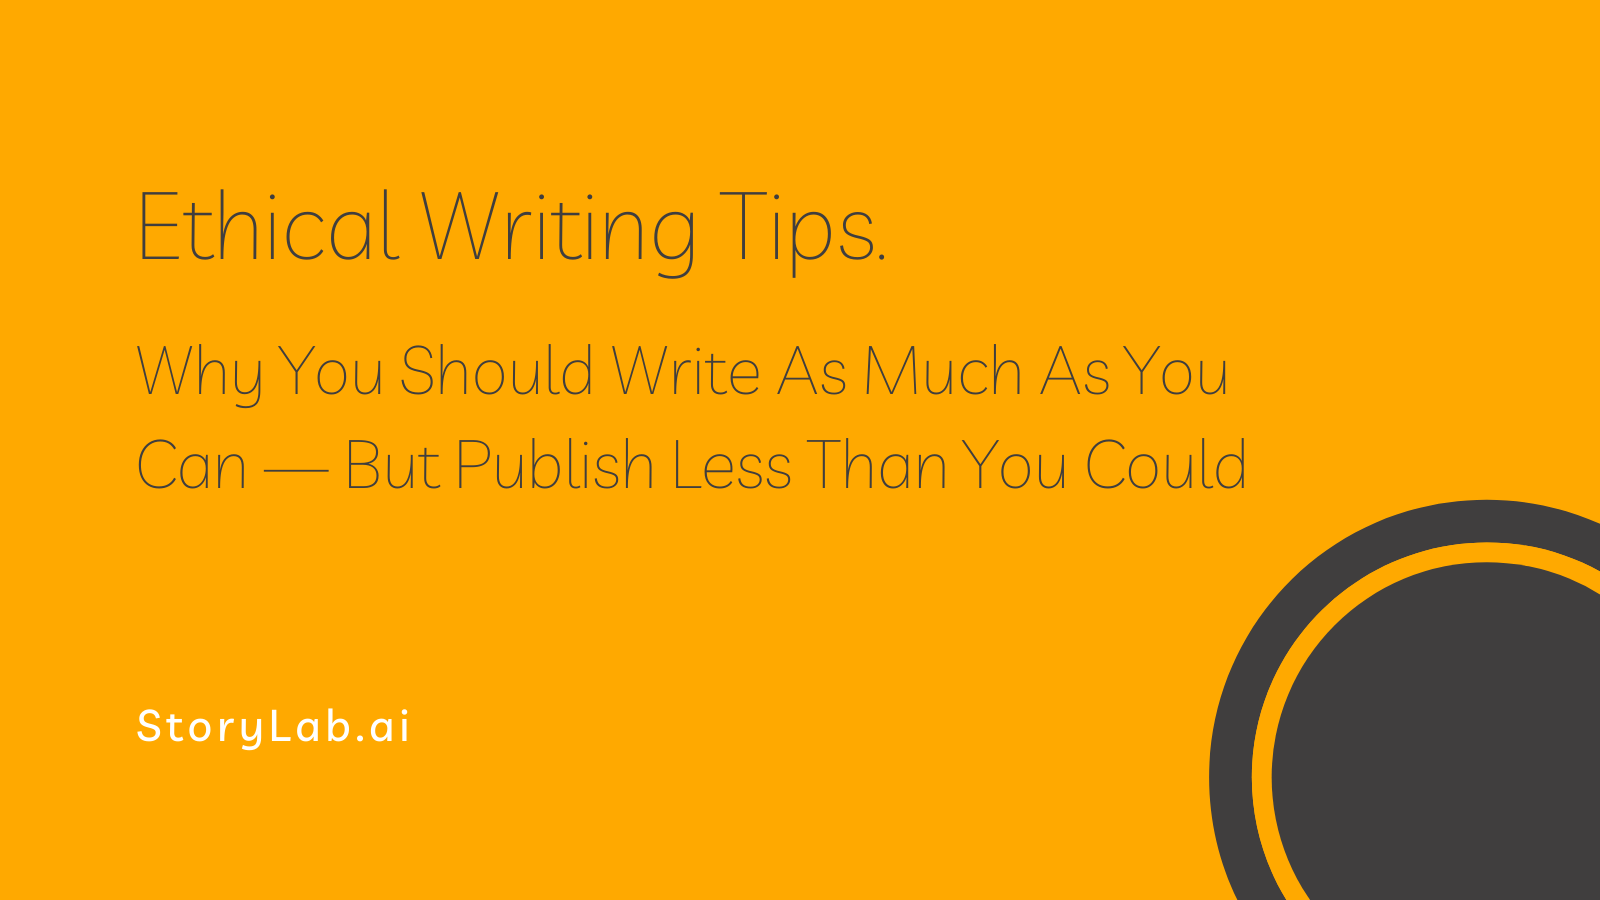 Ethical Writing Tips. Why You Should Publish Less Than You Could.